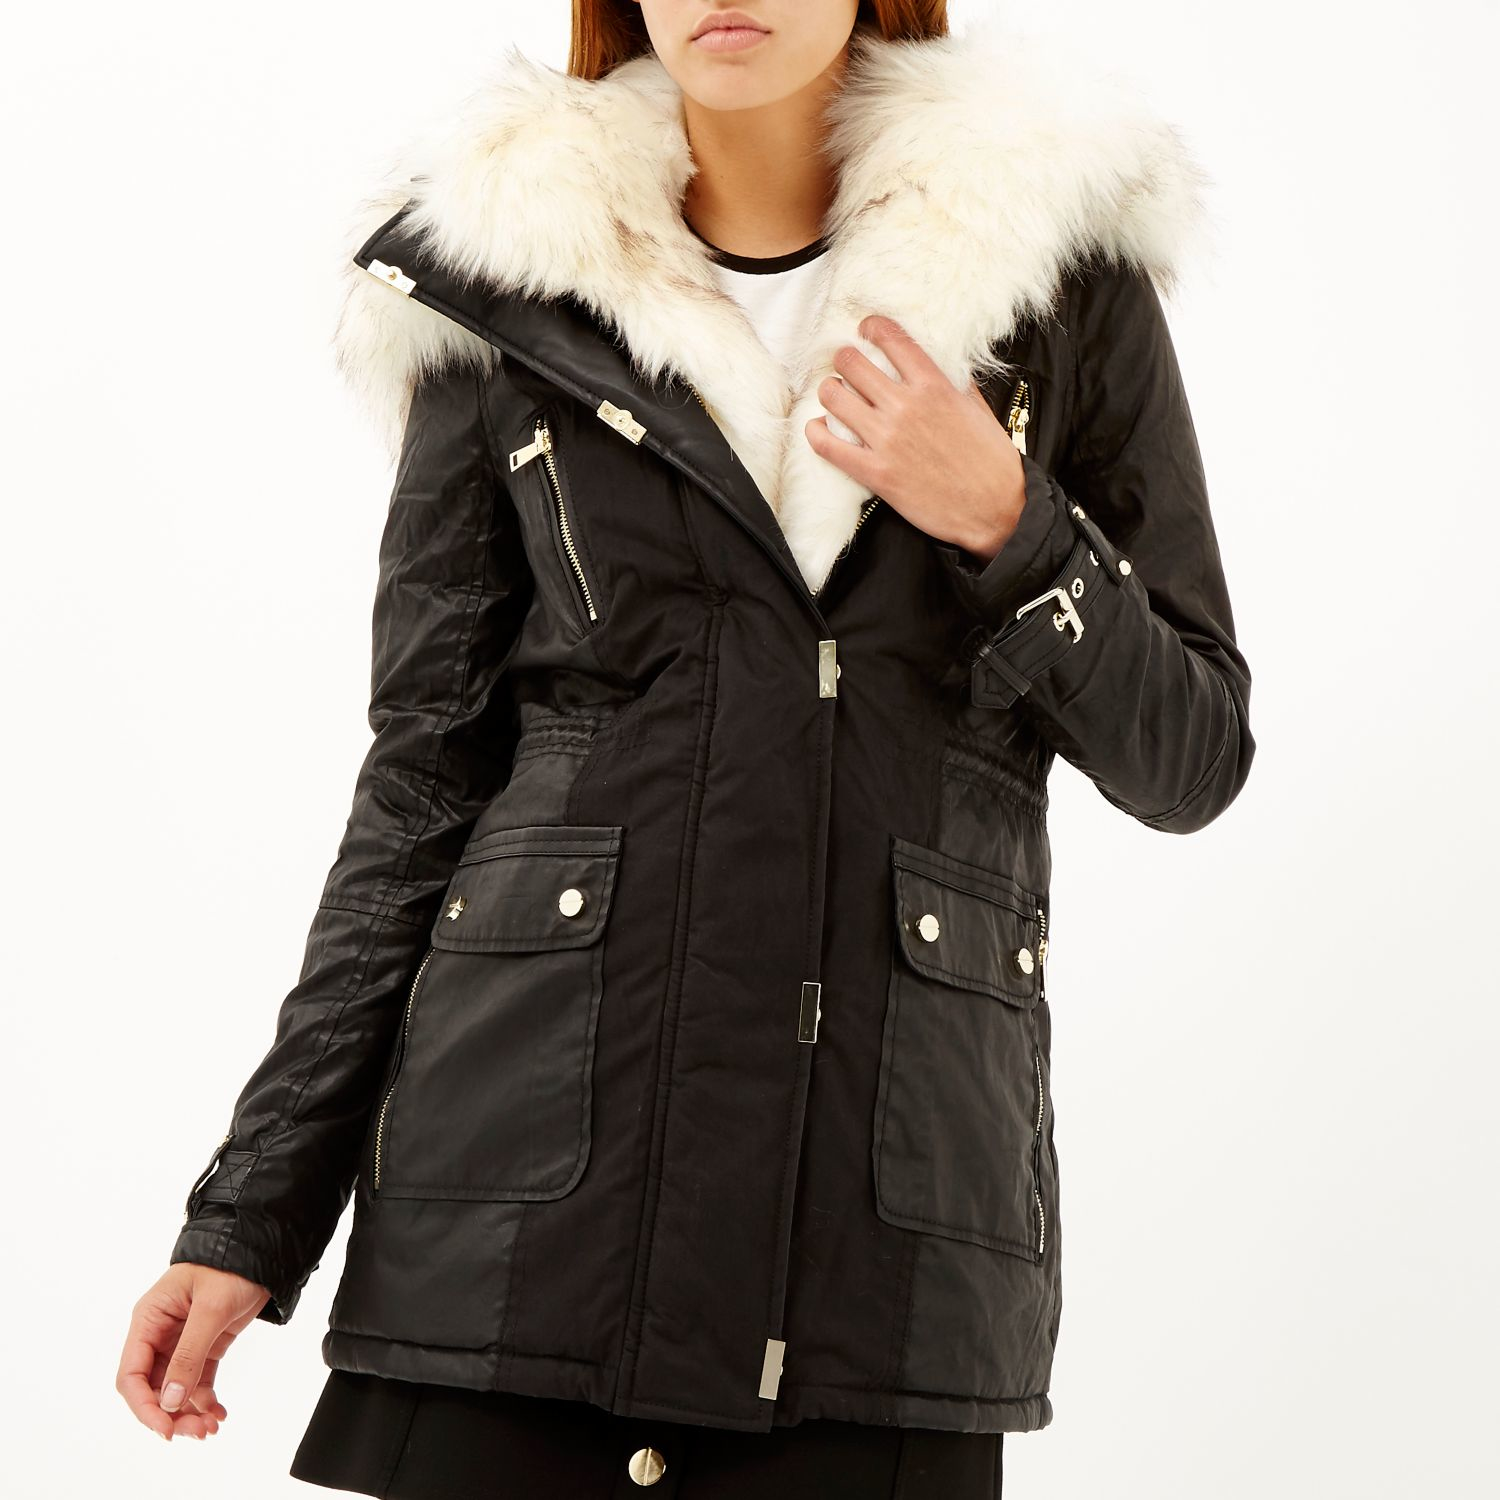 River island Black Faux Fur Trim Parka Jacket in Black | Lyst